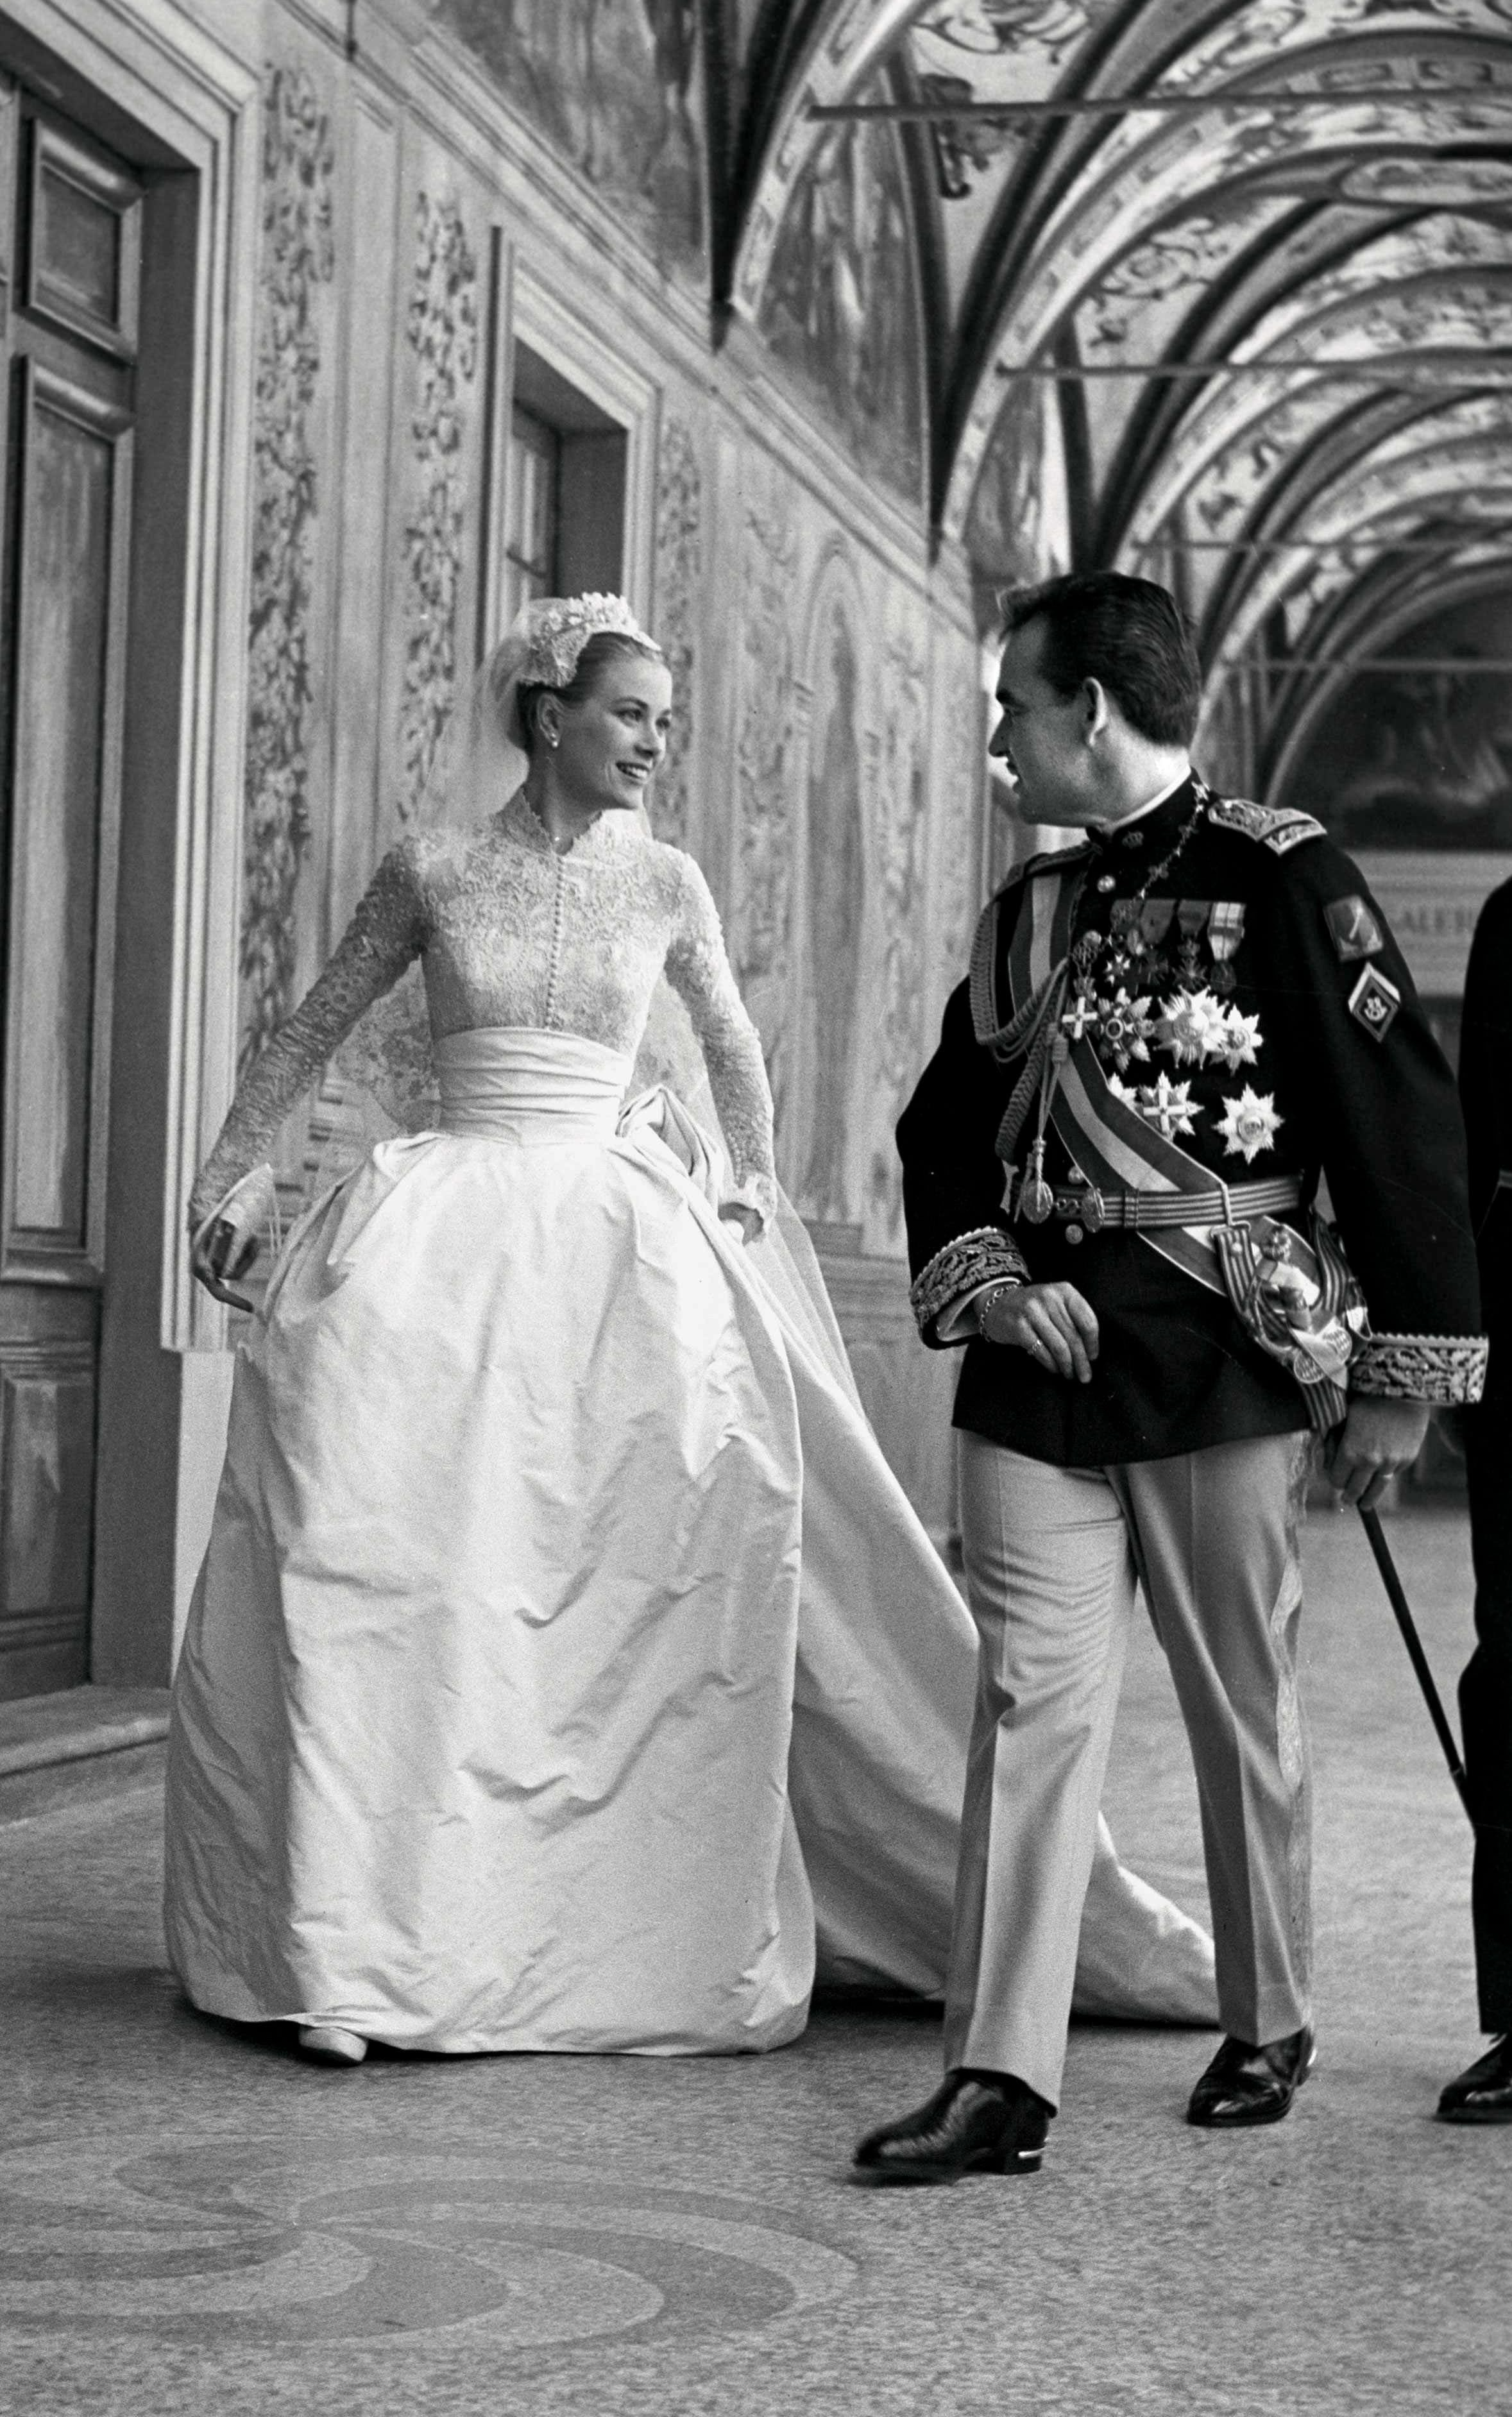 Giving good taste a sense of glamour Why Grace Kelly remains such an enduring style icon